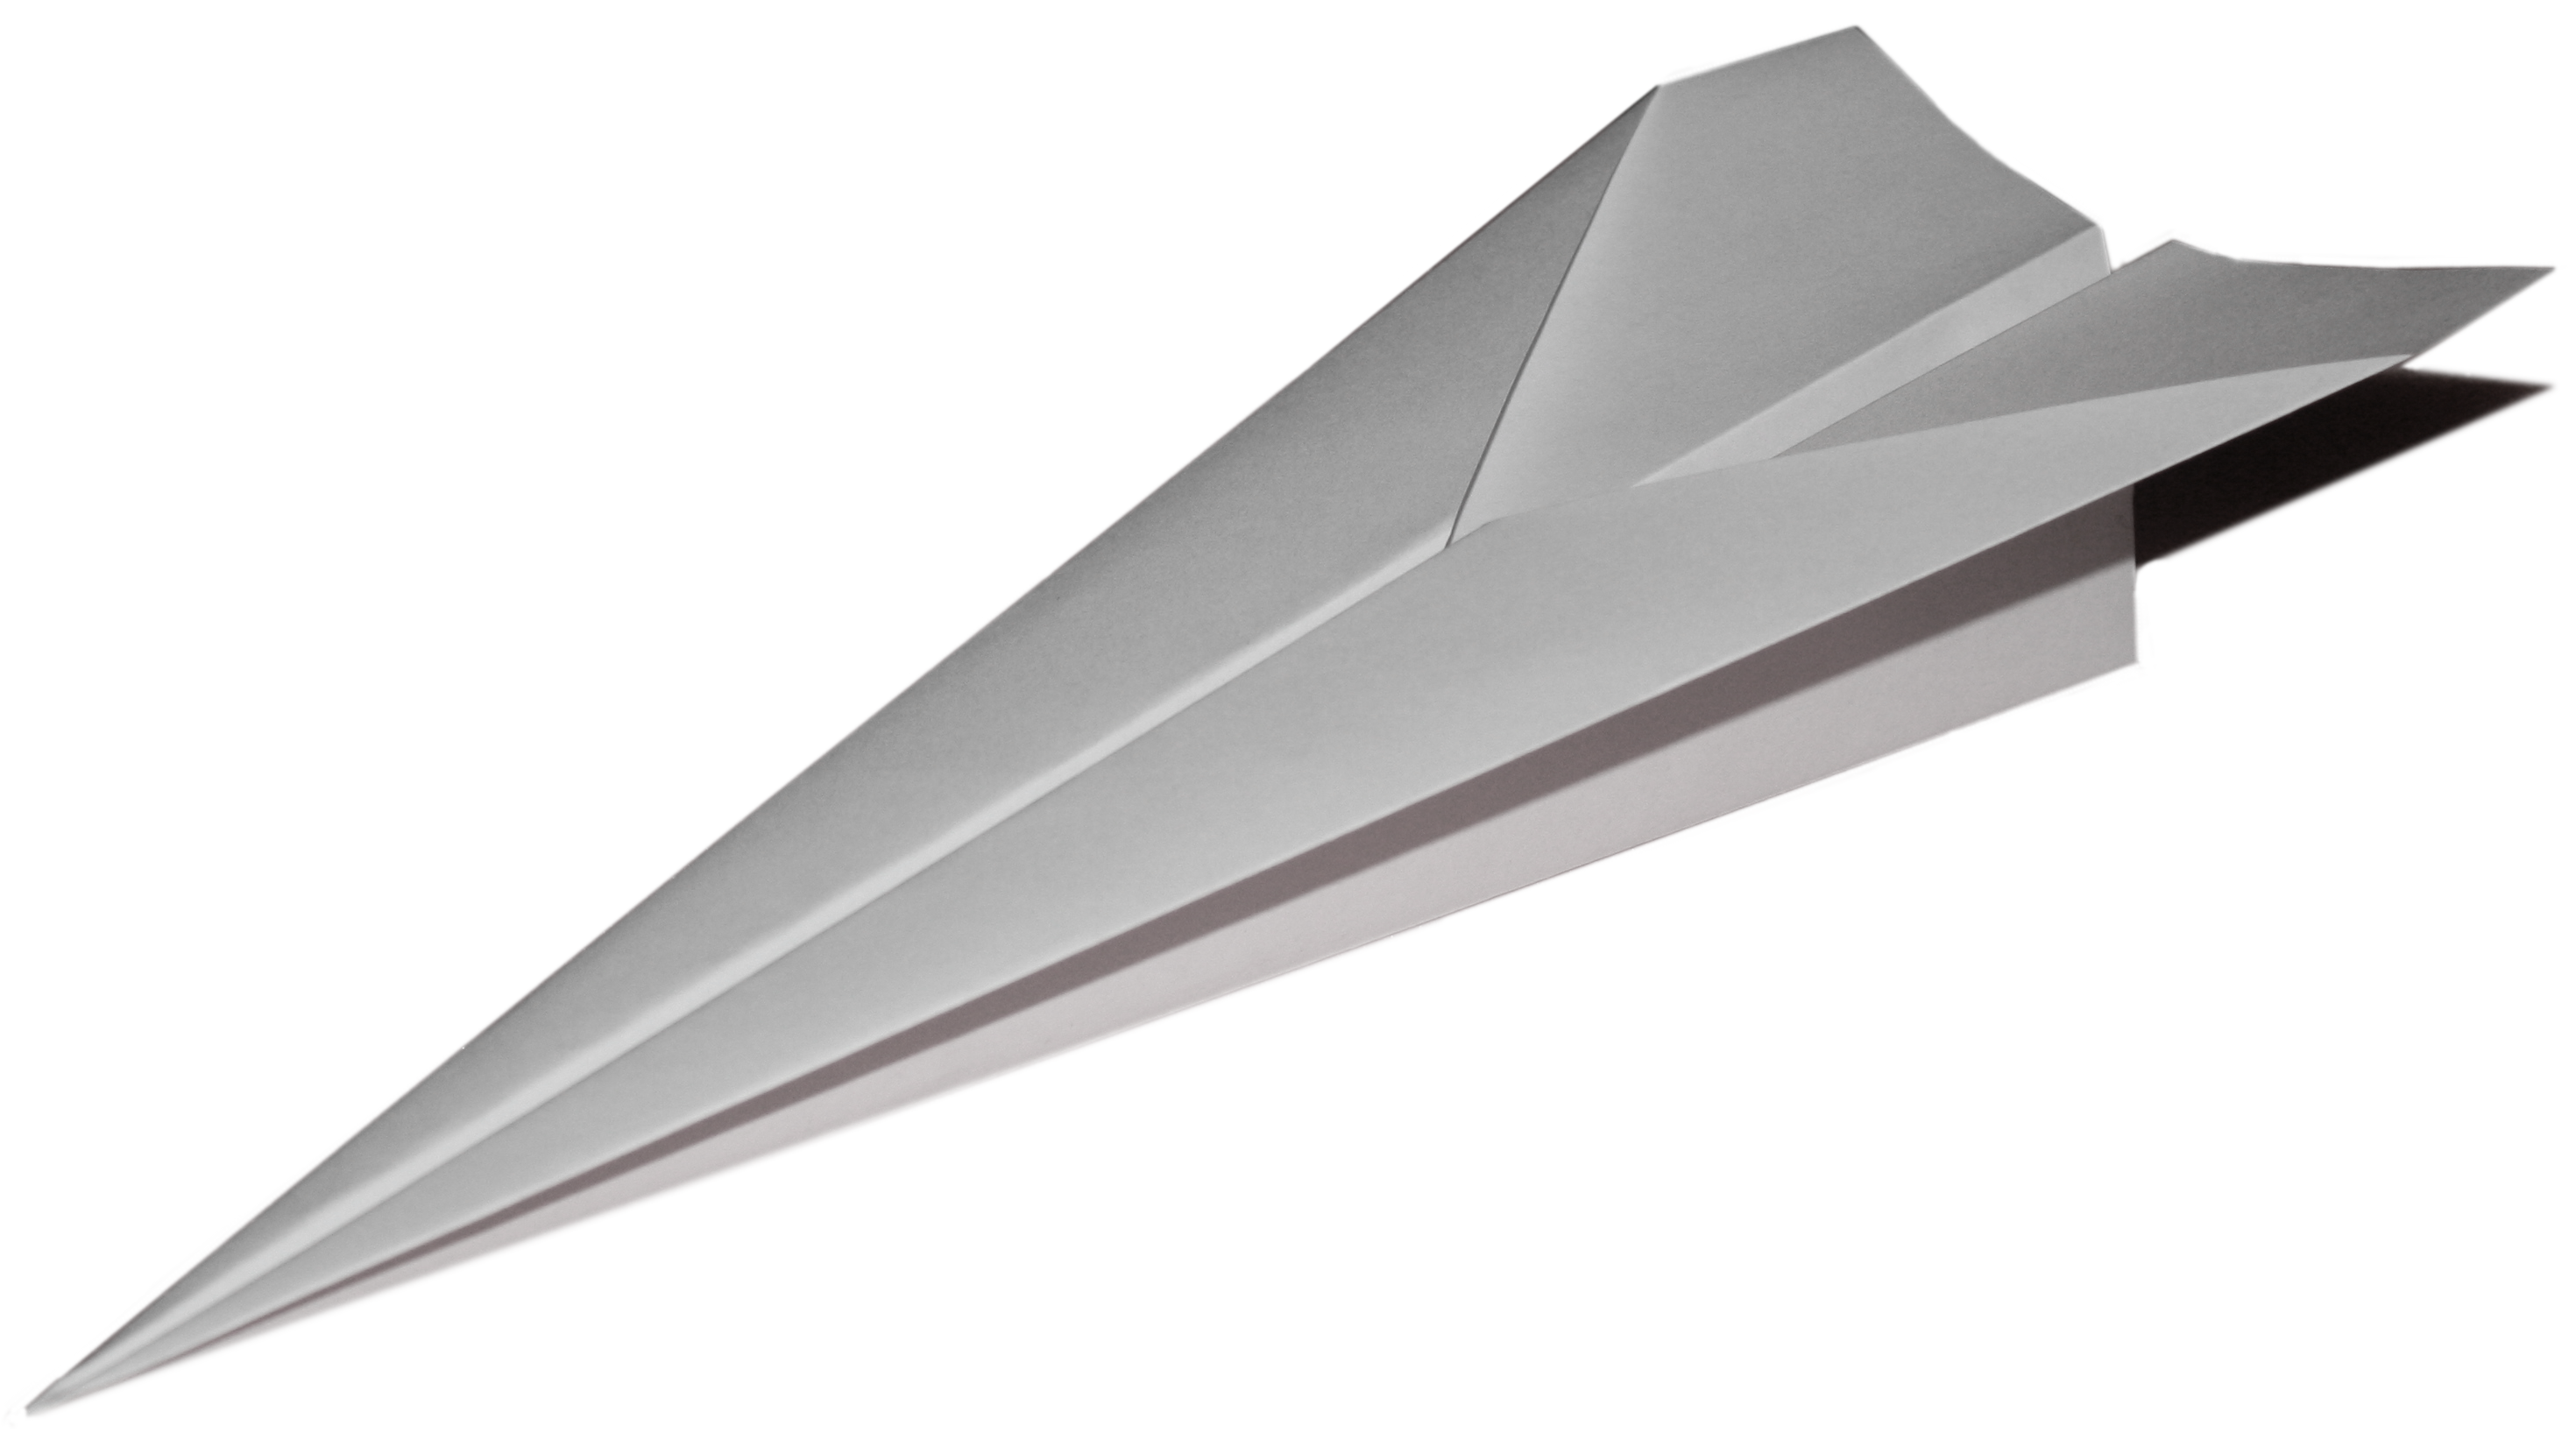 Paper Airplane Png image #27954